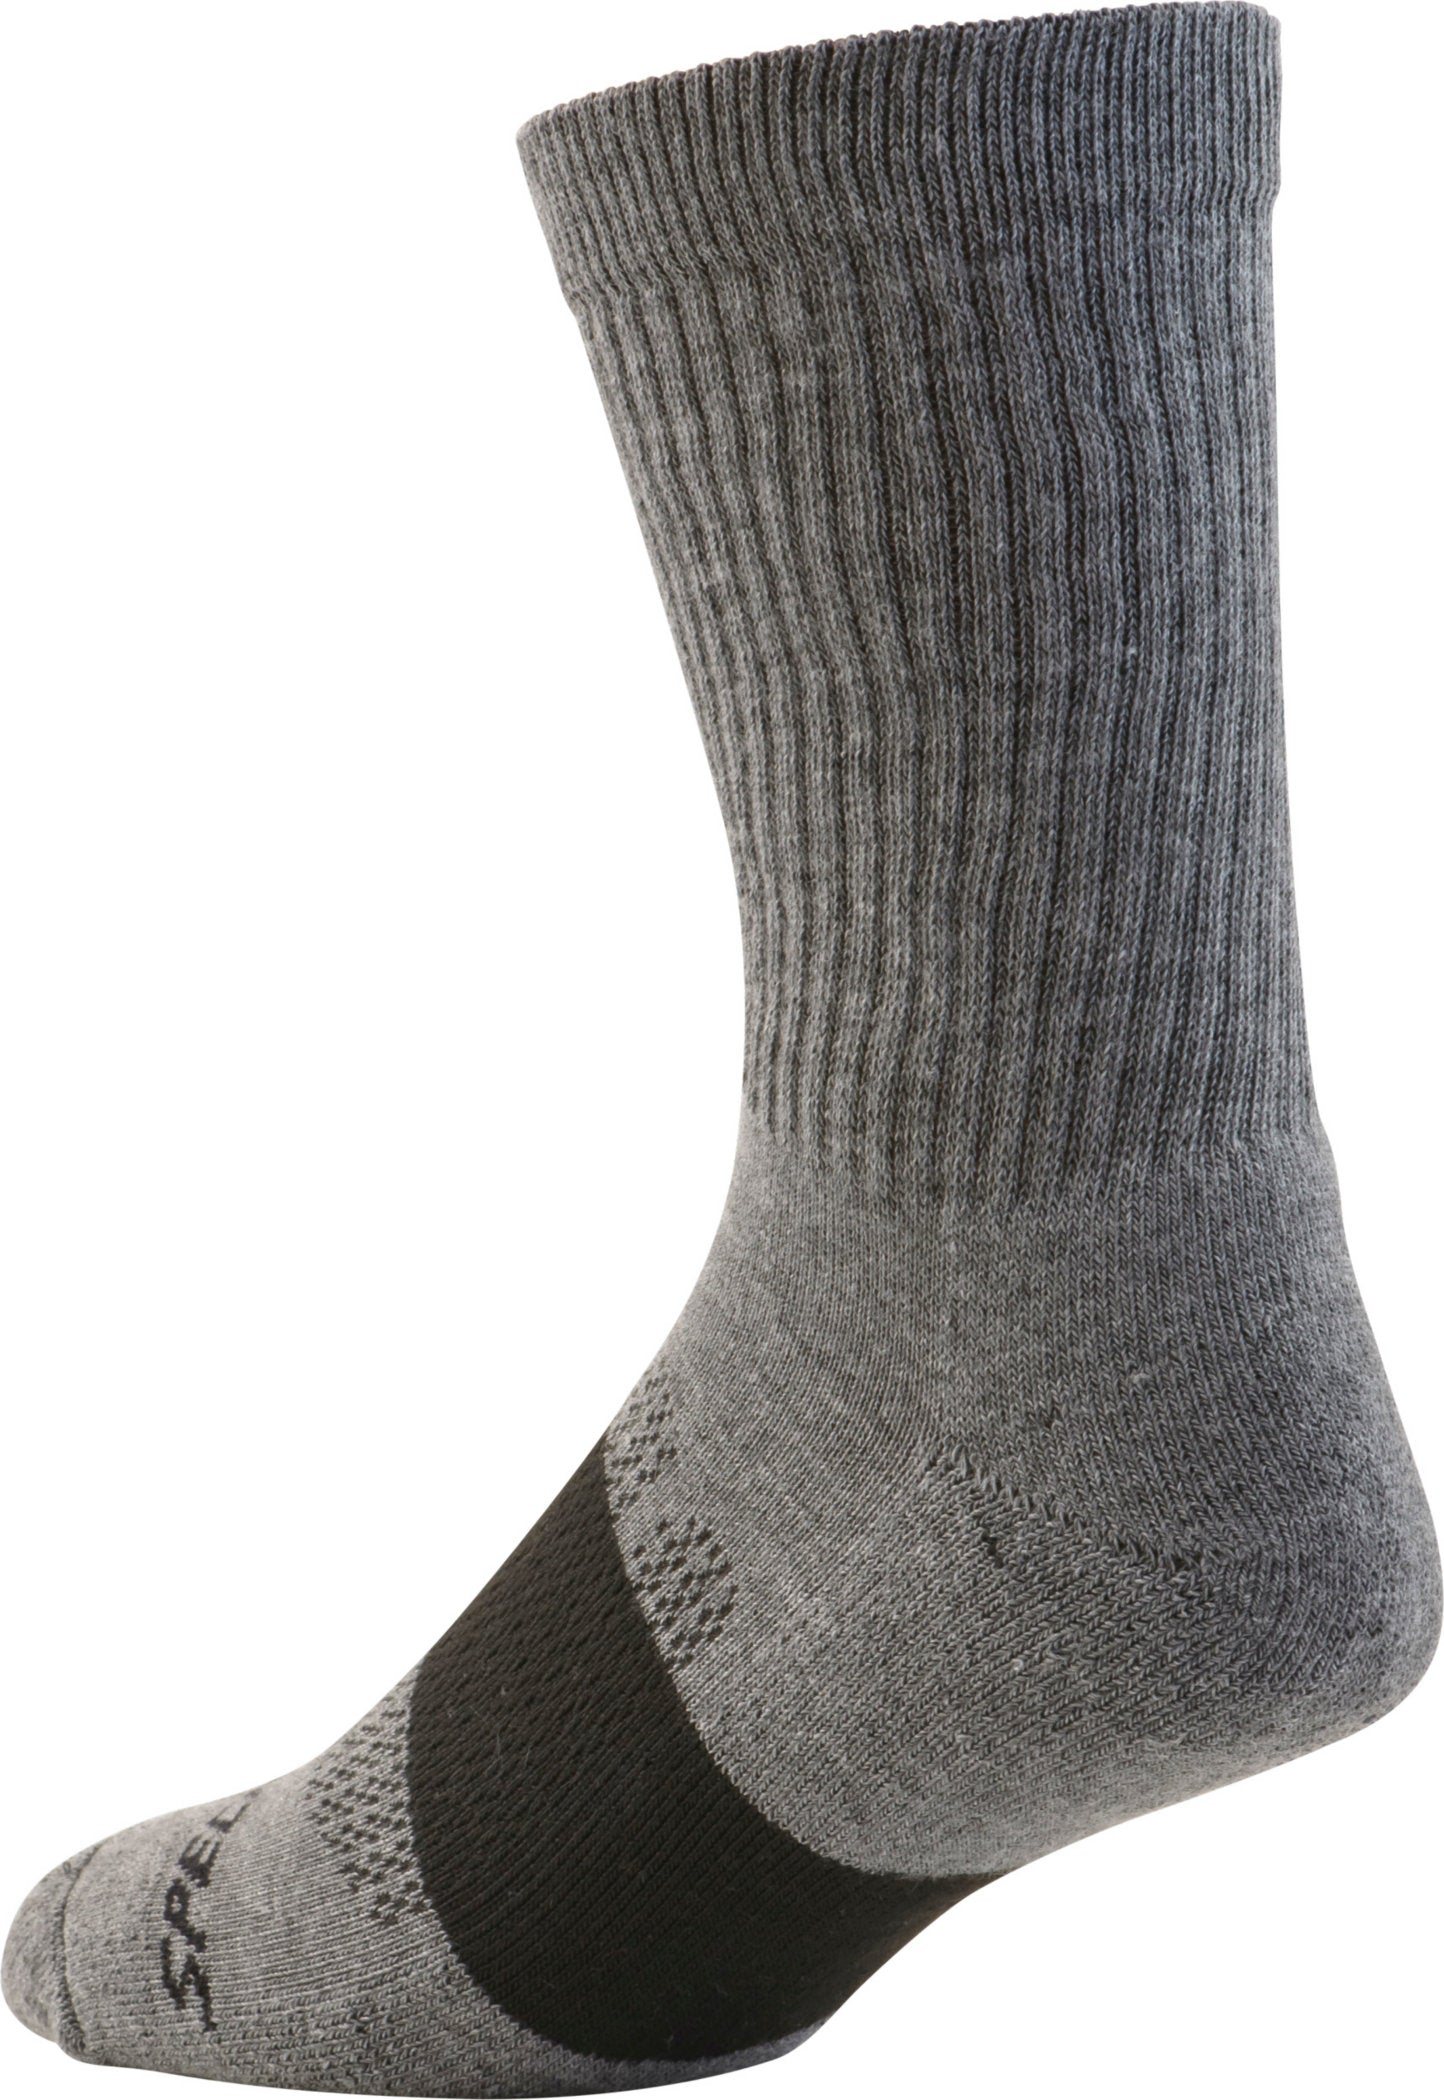 Mountain Tall Socks